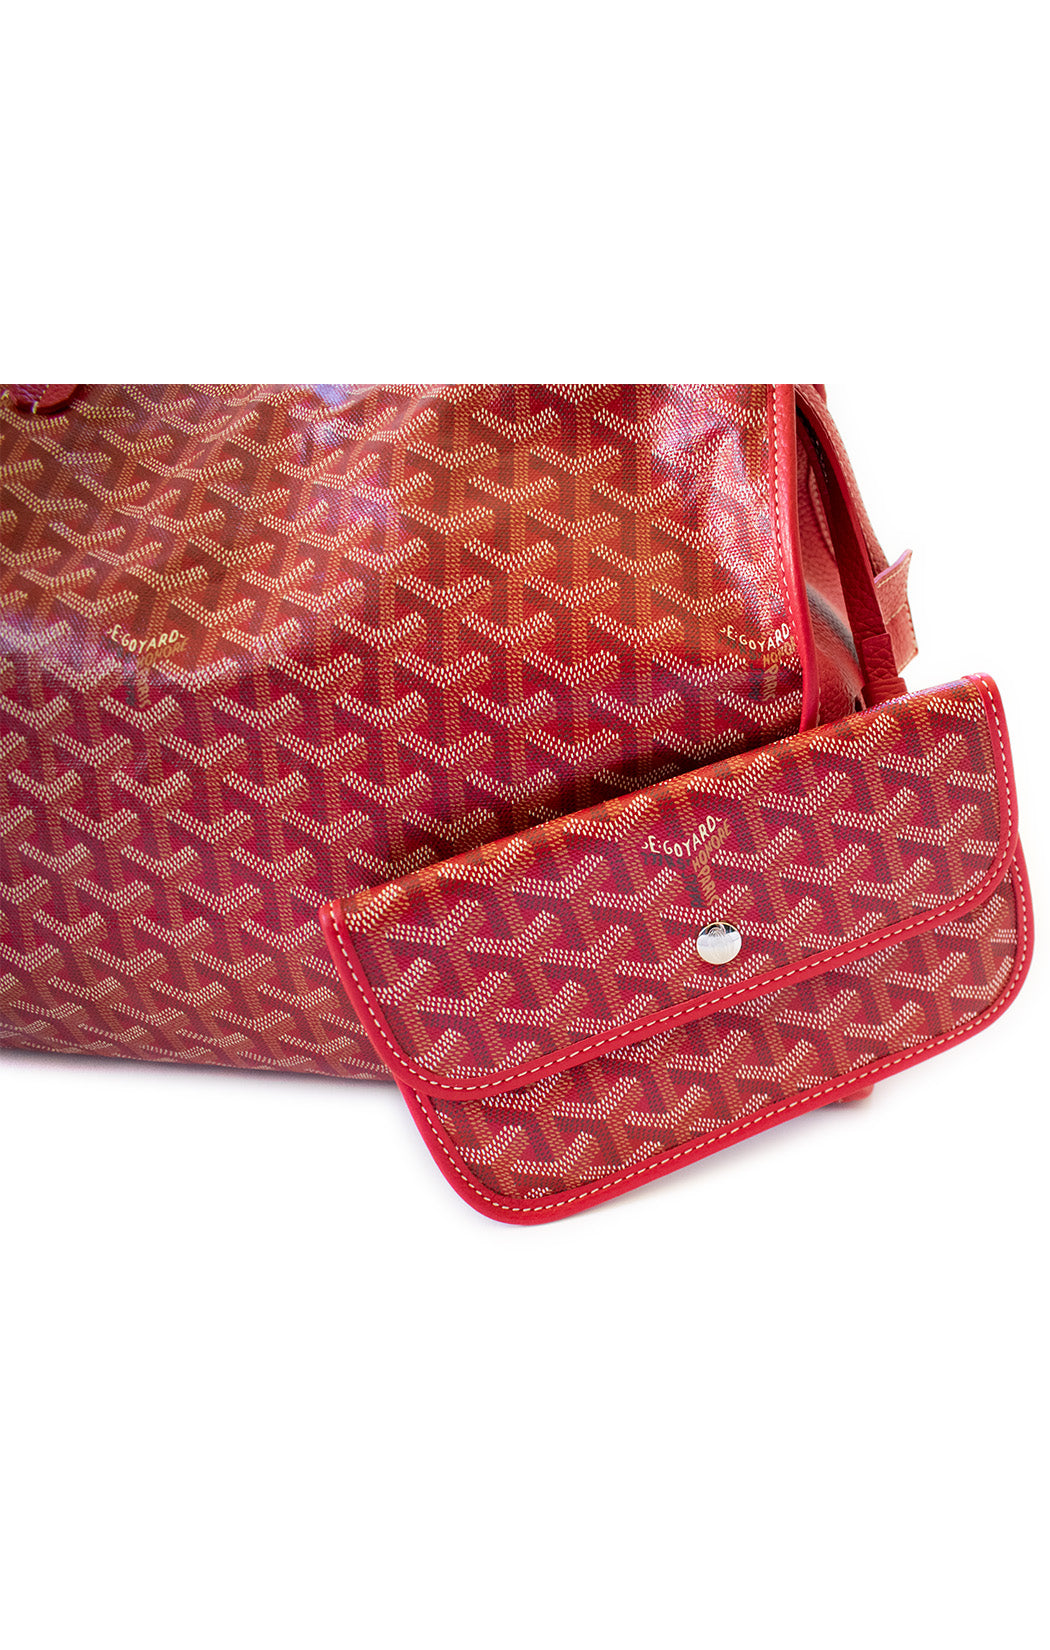 Accessories for GOYARD Pet Carrier Handbag